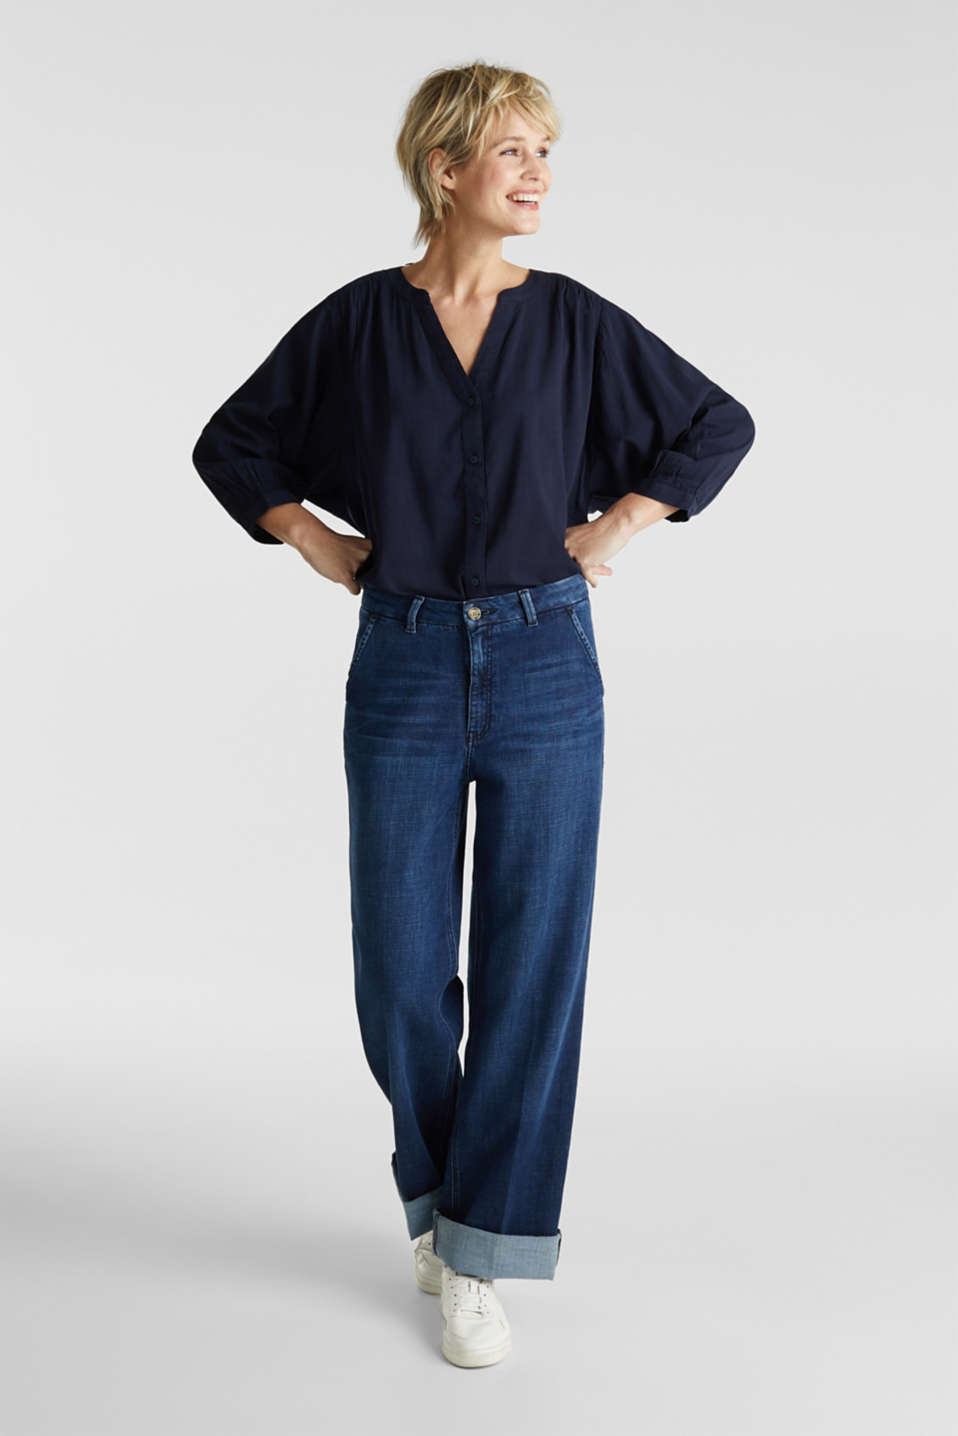 Textured blouse with batwing sleeves, NAVY, detail image number 5